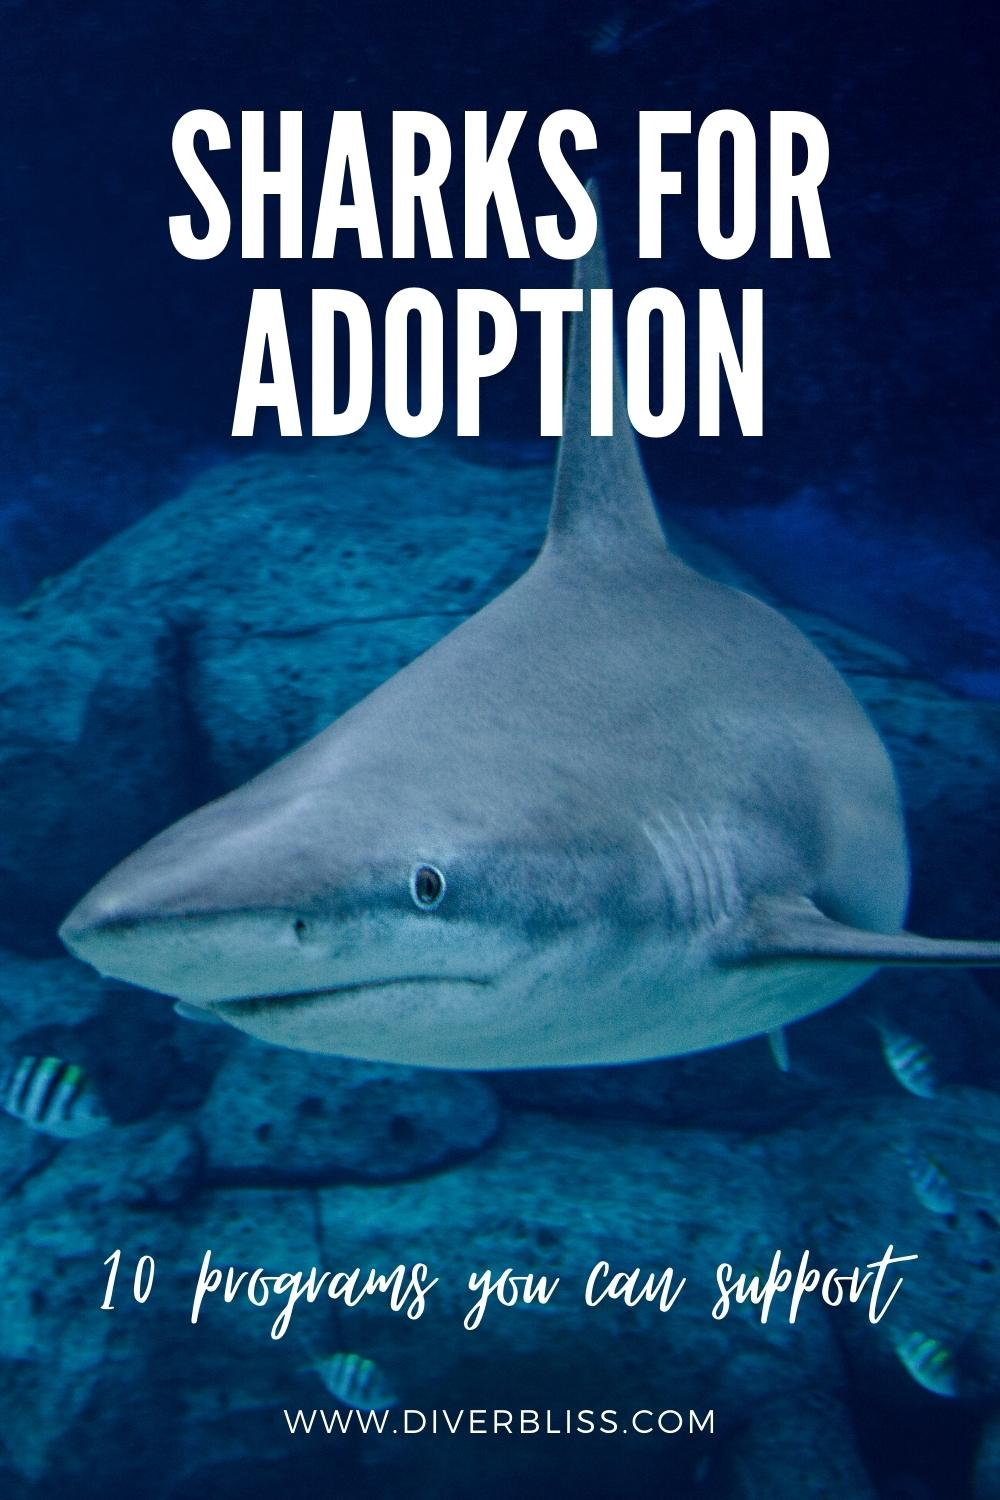 sharks for adoption: 10 programs you can support